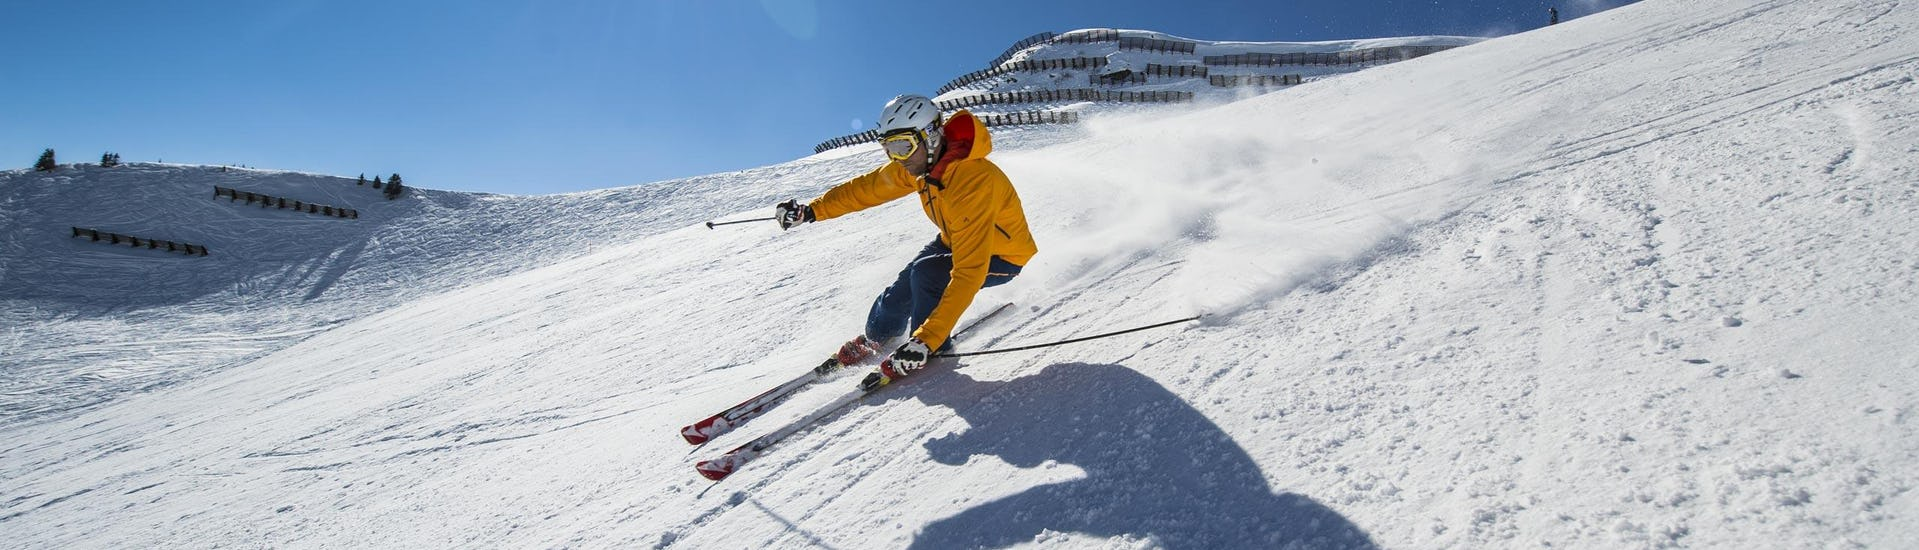 Ski Instructor Private for Adults - All Levels: A skier is skiing down a sunny ski slope while participating in an activity offered by Scuola di Sci e Snowboard Dolomites Armentarola.